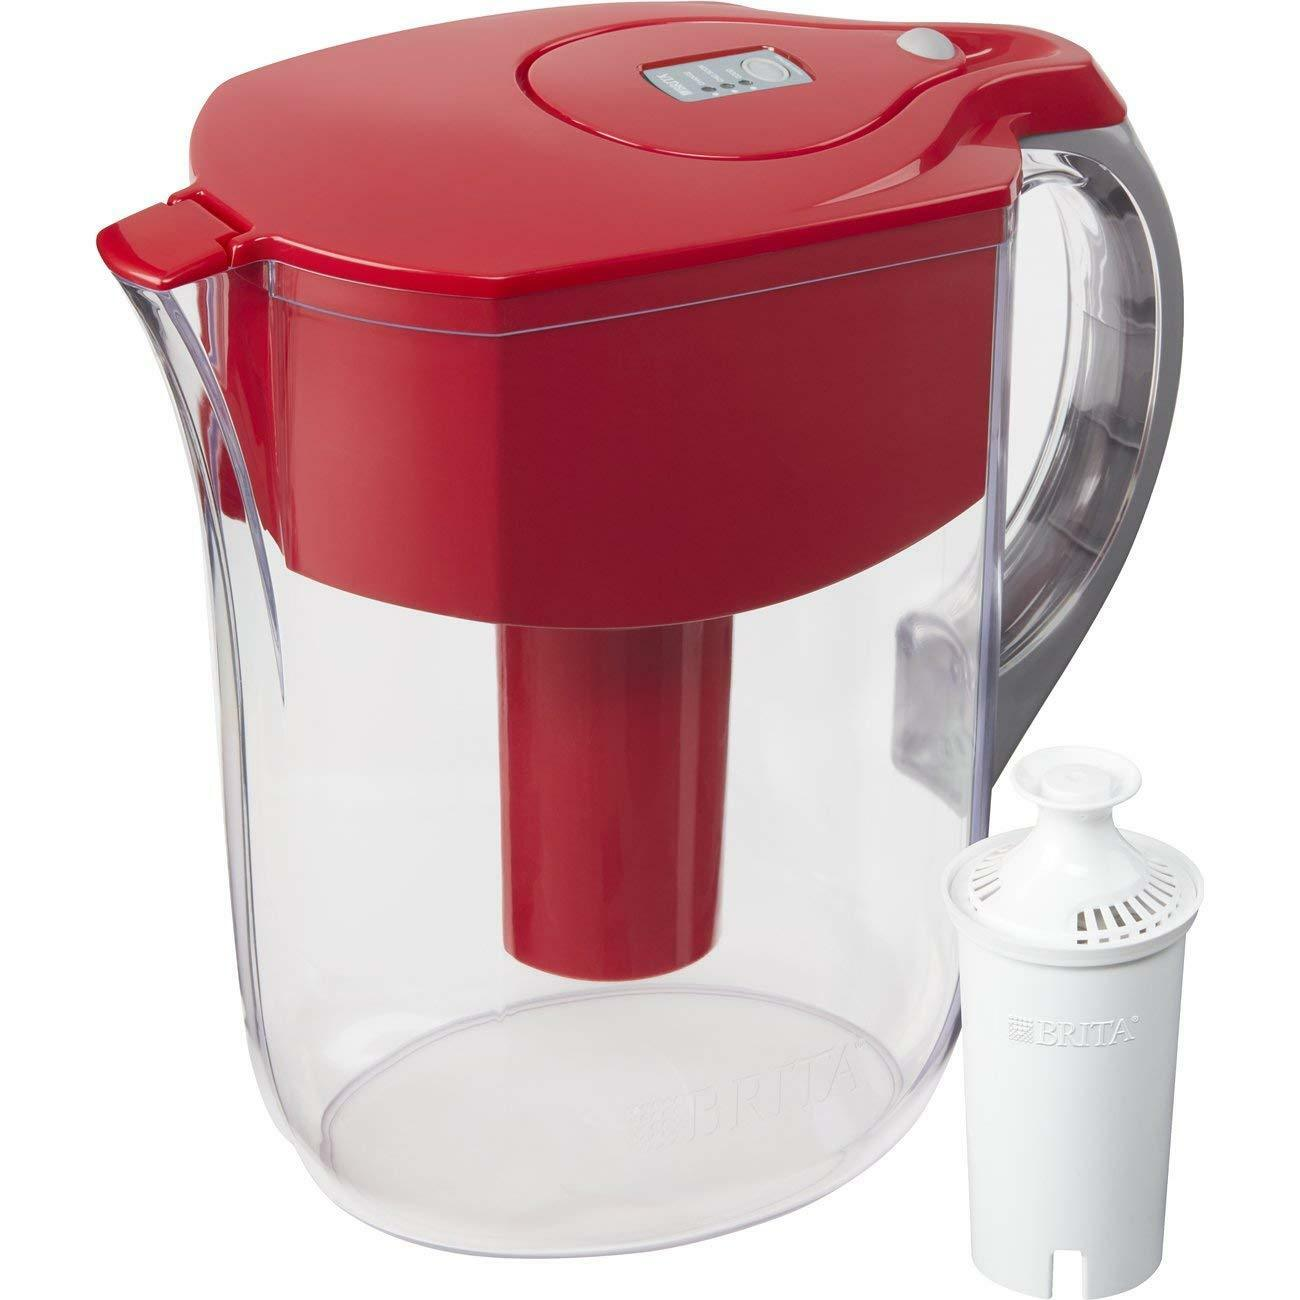 Brita Large 10 Cup Grand Water Pitcher with Filter - BPA Free - Red FAST SHIP